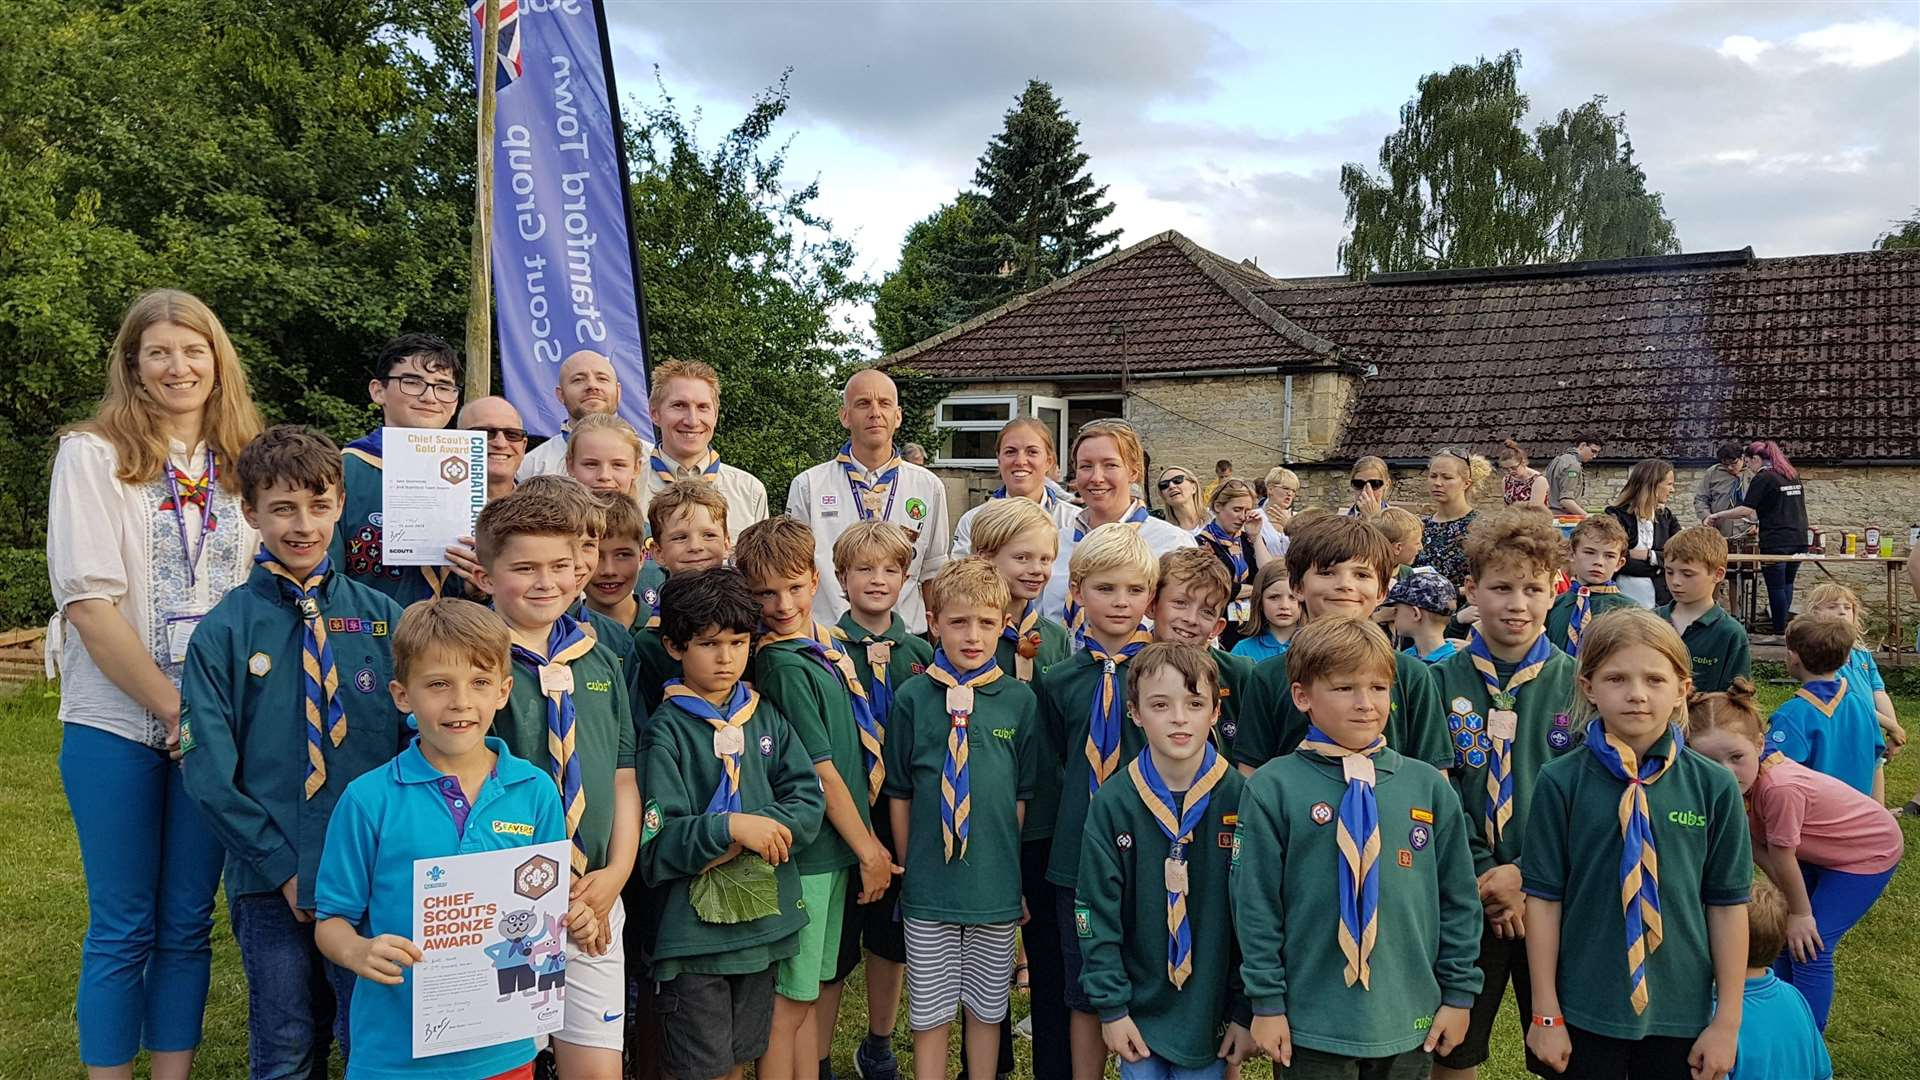 Beavers, cubs and Scouts who have attained their bronze, silver and gold Chief Scout Awards in the last year with Miranda Rock and the leaders who have supported them